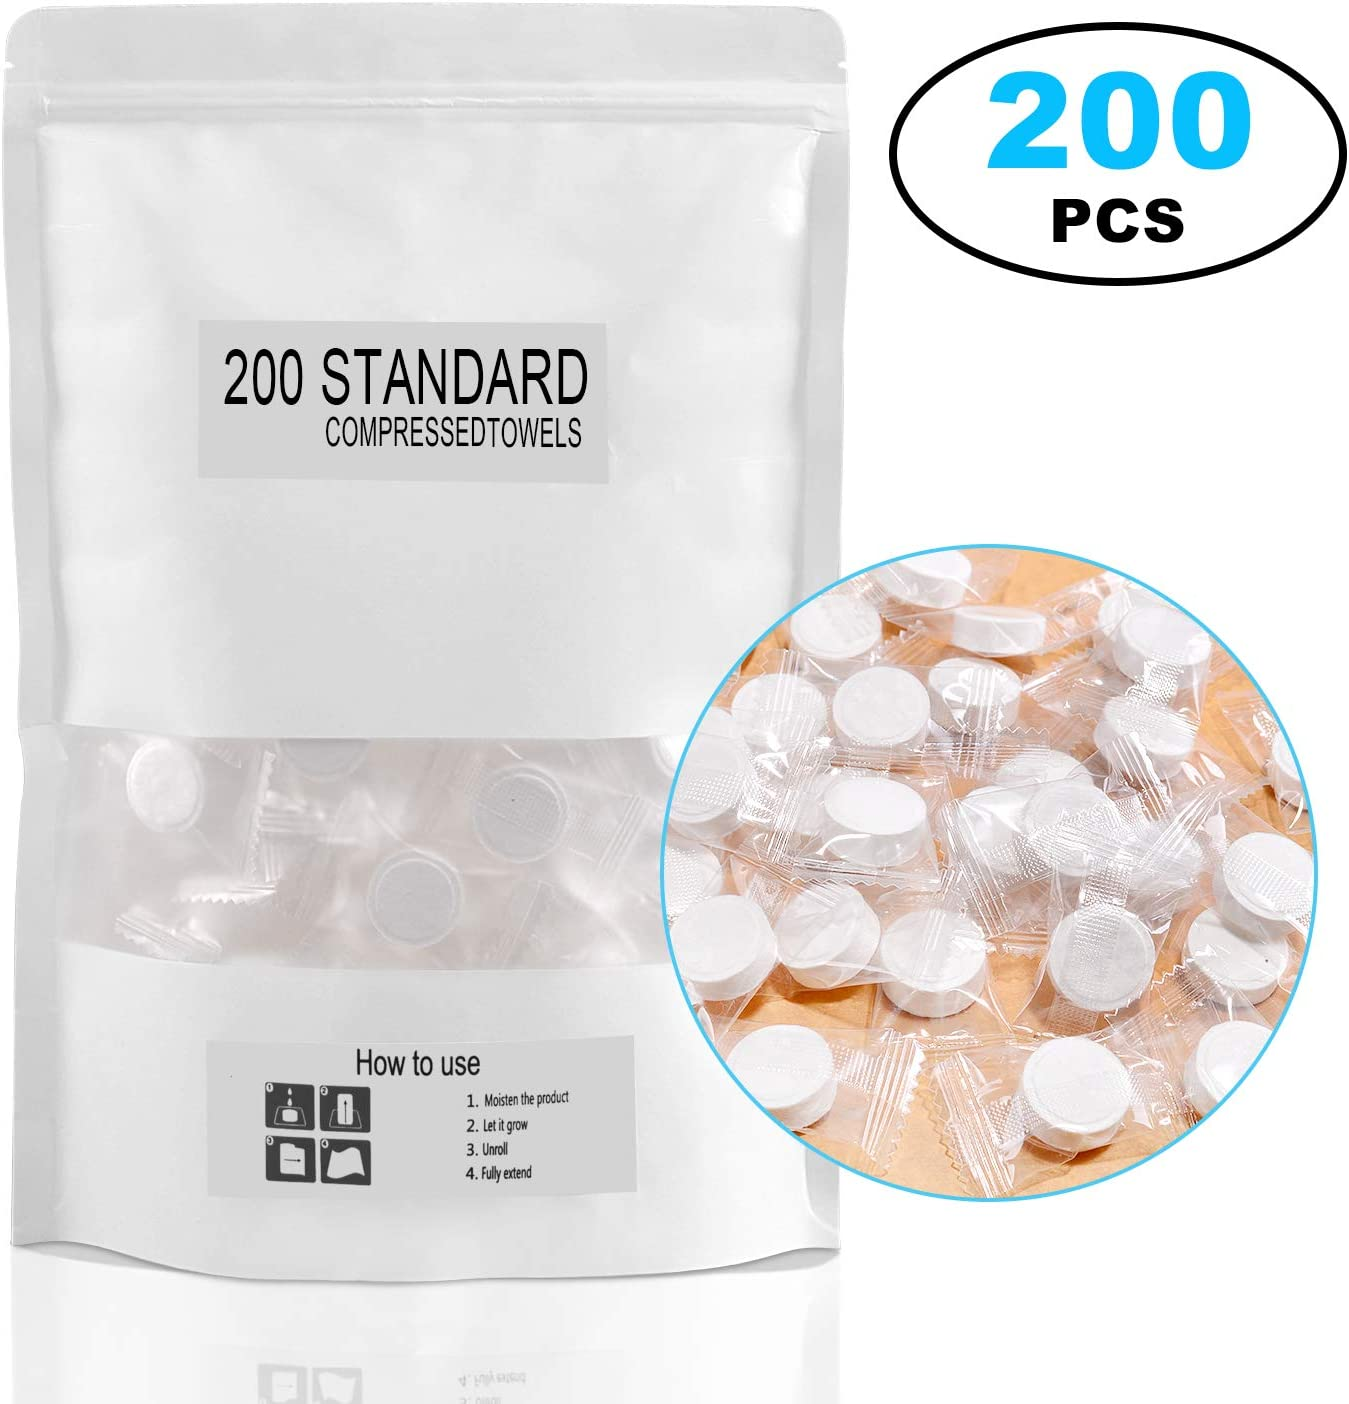 200pcs Mini Compressed Towel Portable Compressed Coin Tissue for Travel//Home//Outdoor Activities Magic Disposable Face Compressed Towels Soft Compressed Hand Wipe